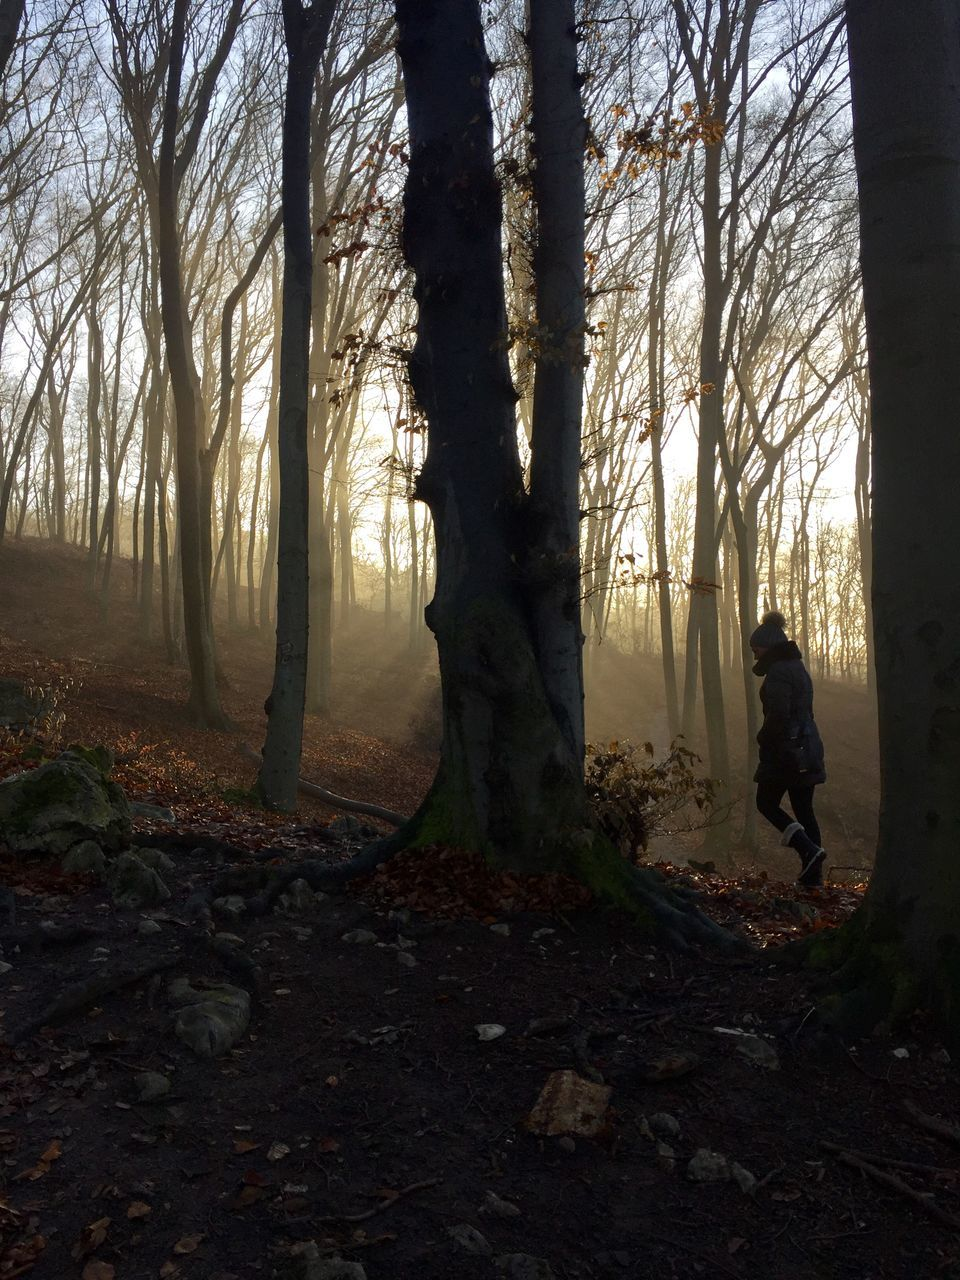 tree, forest, nature, tree trunk, one person, full length, silhouette, autumn, landscape, branch, real people, outdoors, day, beauty in nature, sky, people